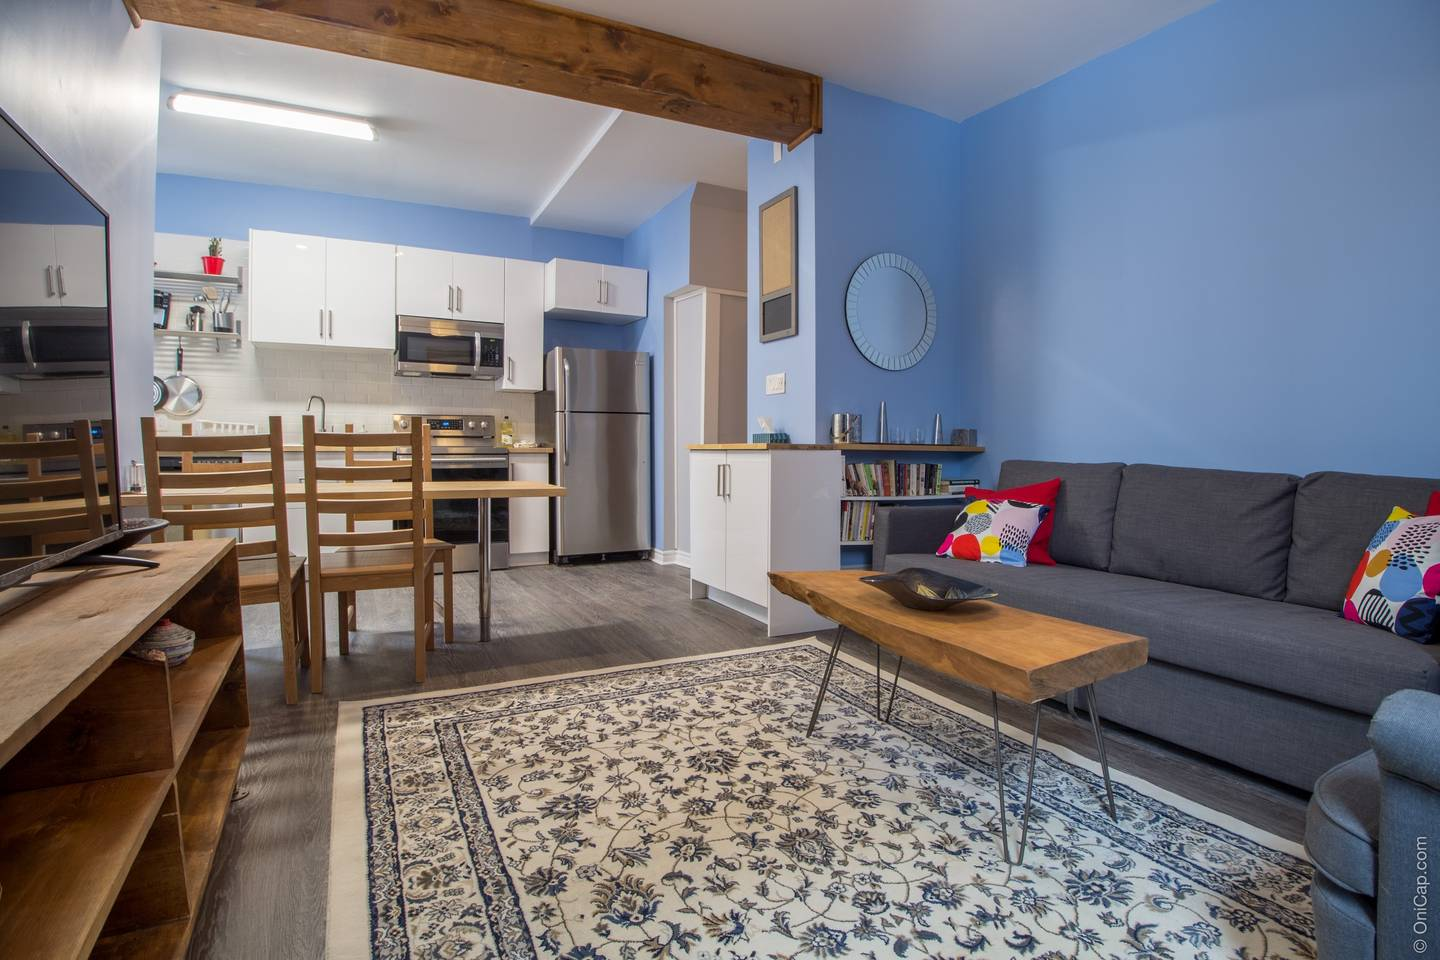 We have a variety of Airbnb units in Ottawa available to book.